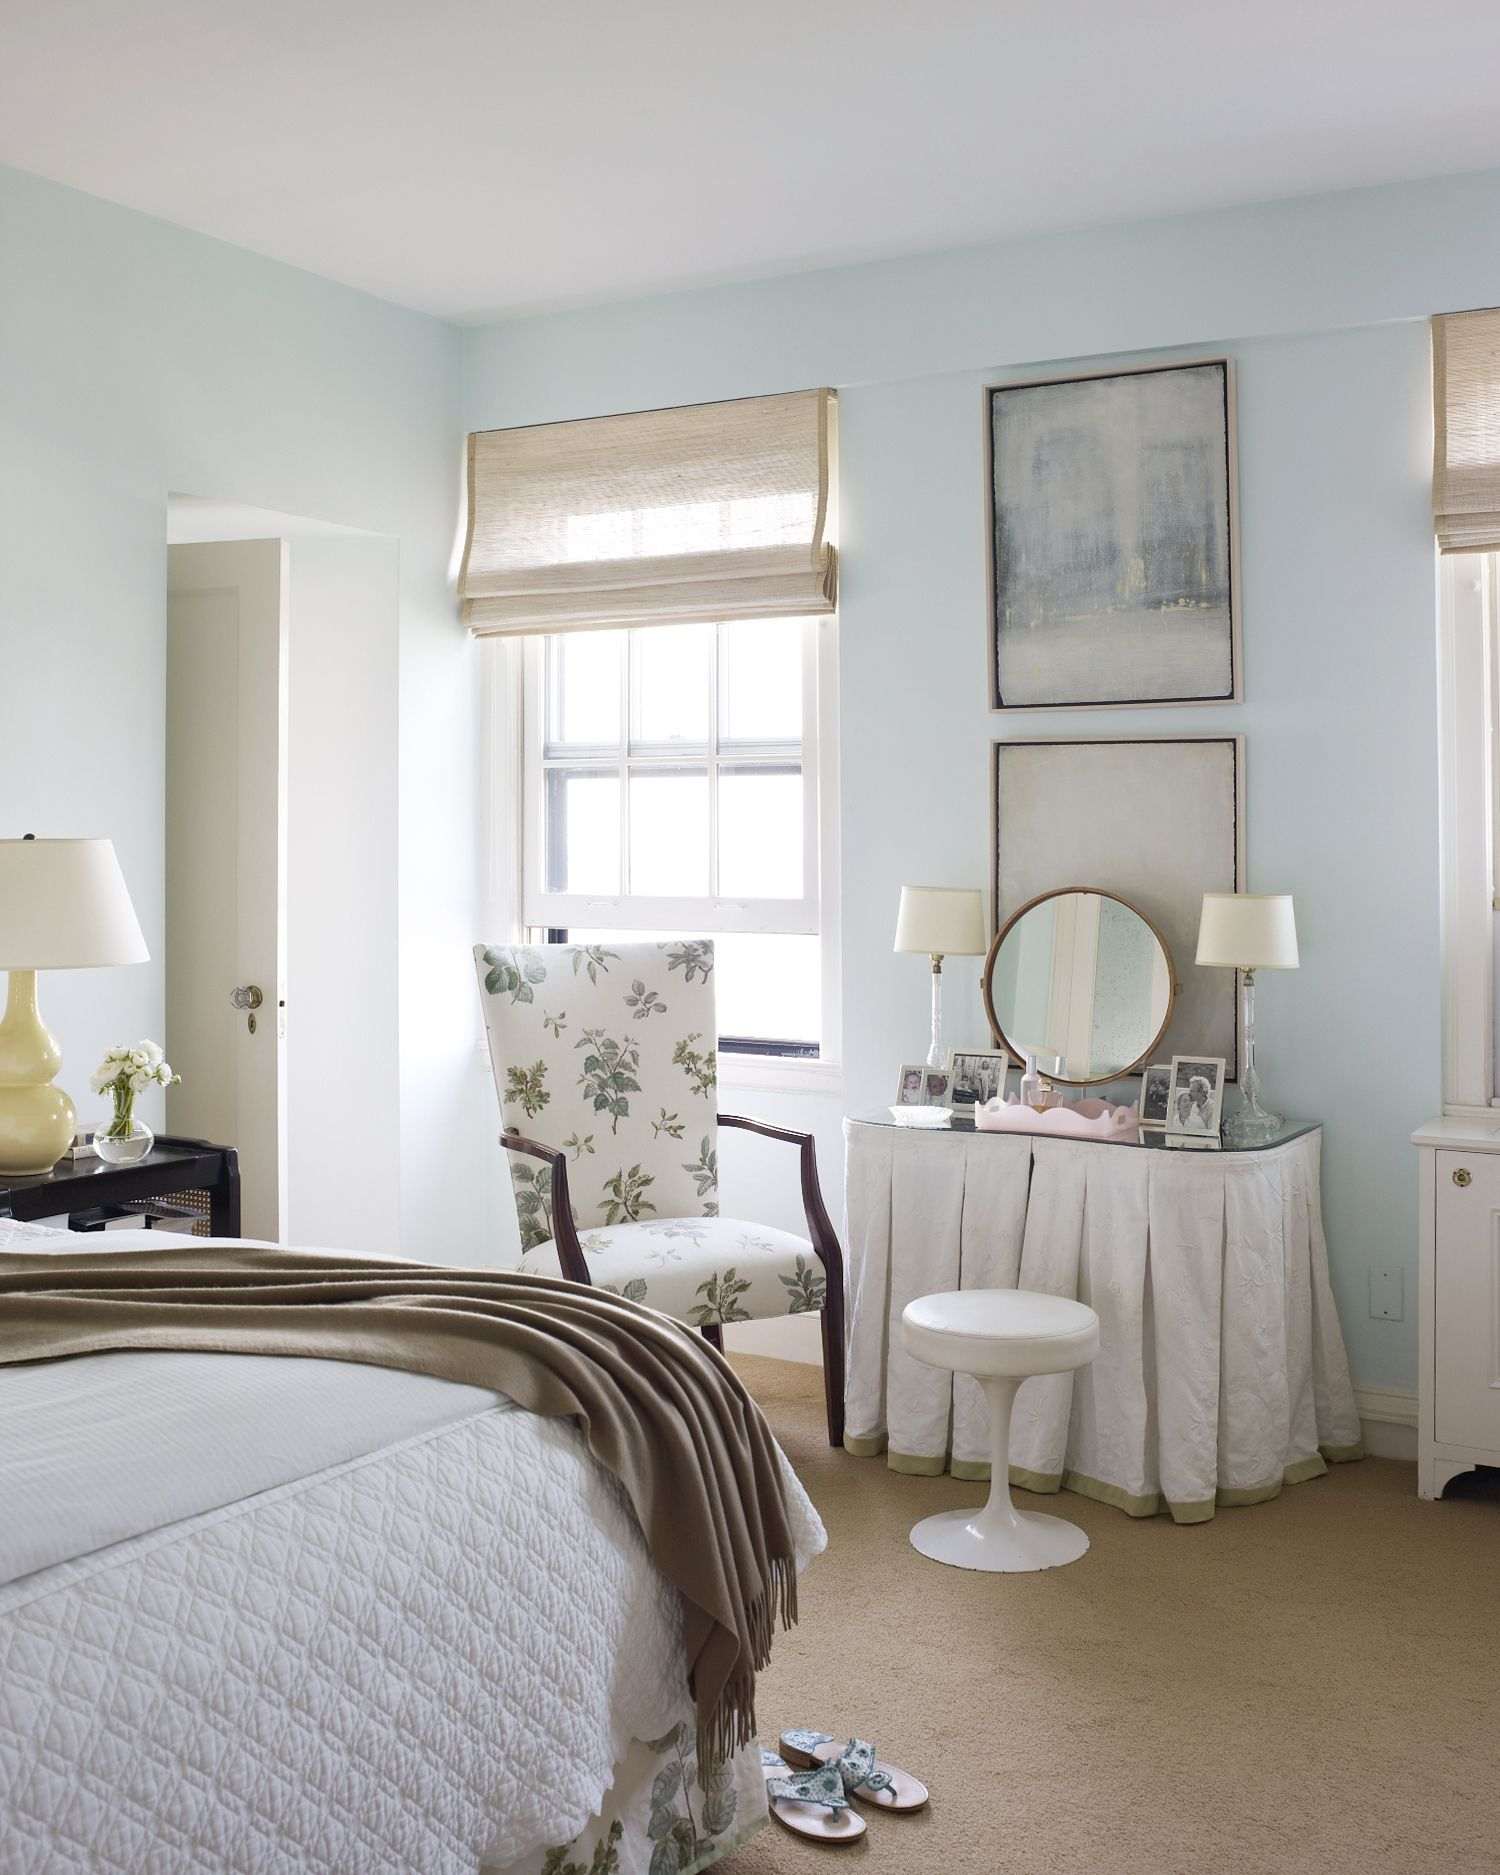 Beautiful Bedroom Girls With Dressing Room: Another View Of This Blue And White